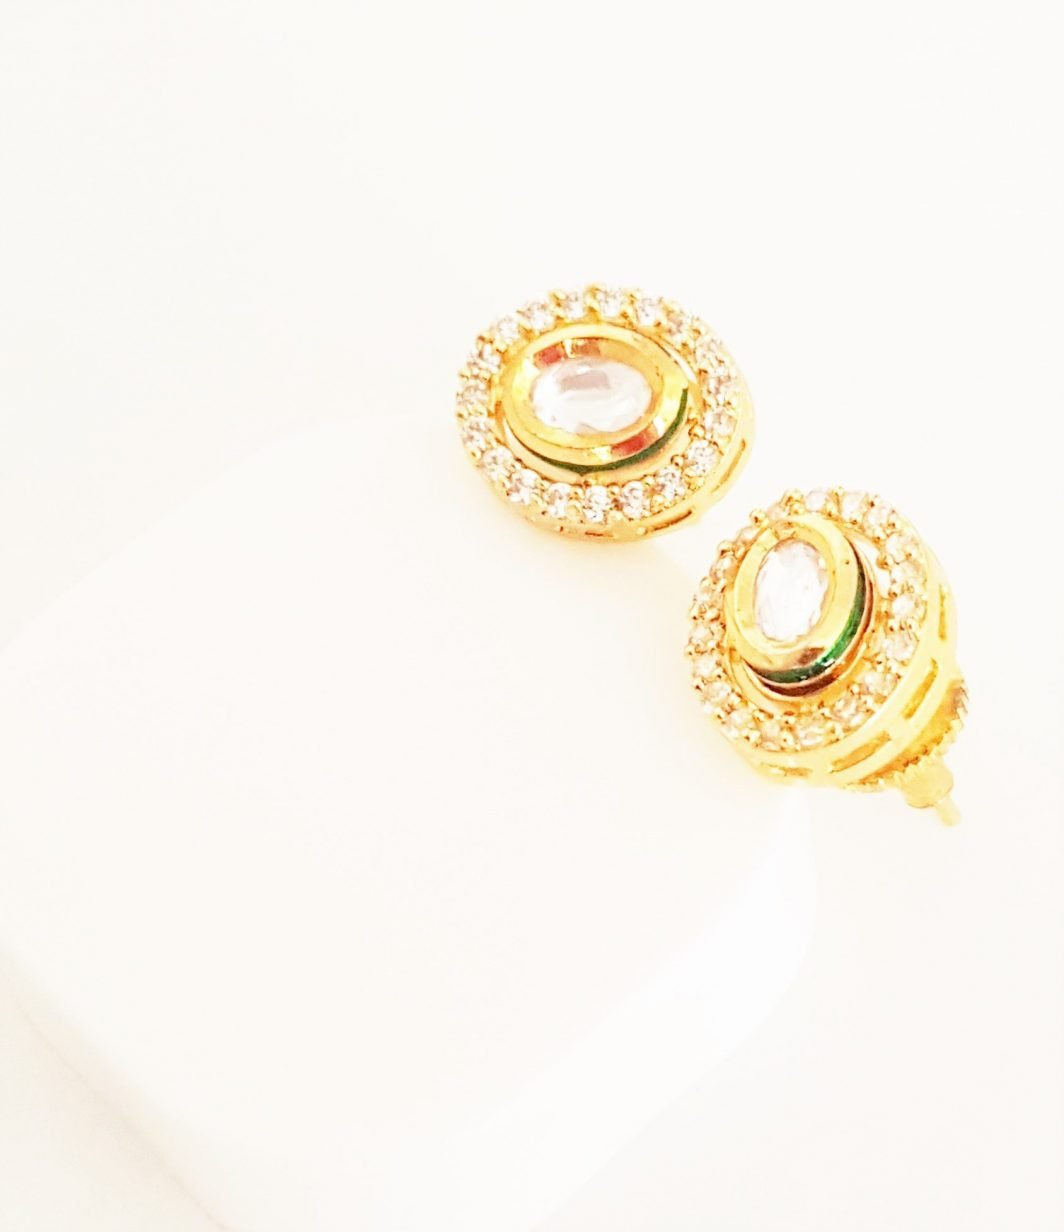 Oval Shaped White Stud Earrings